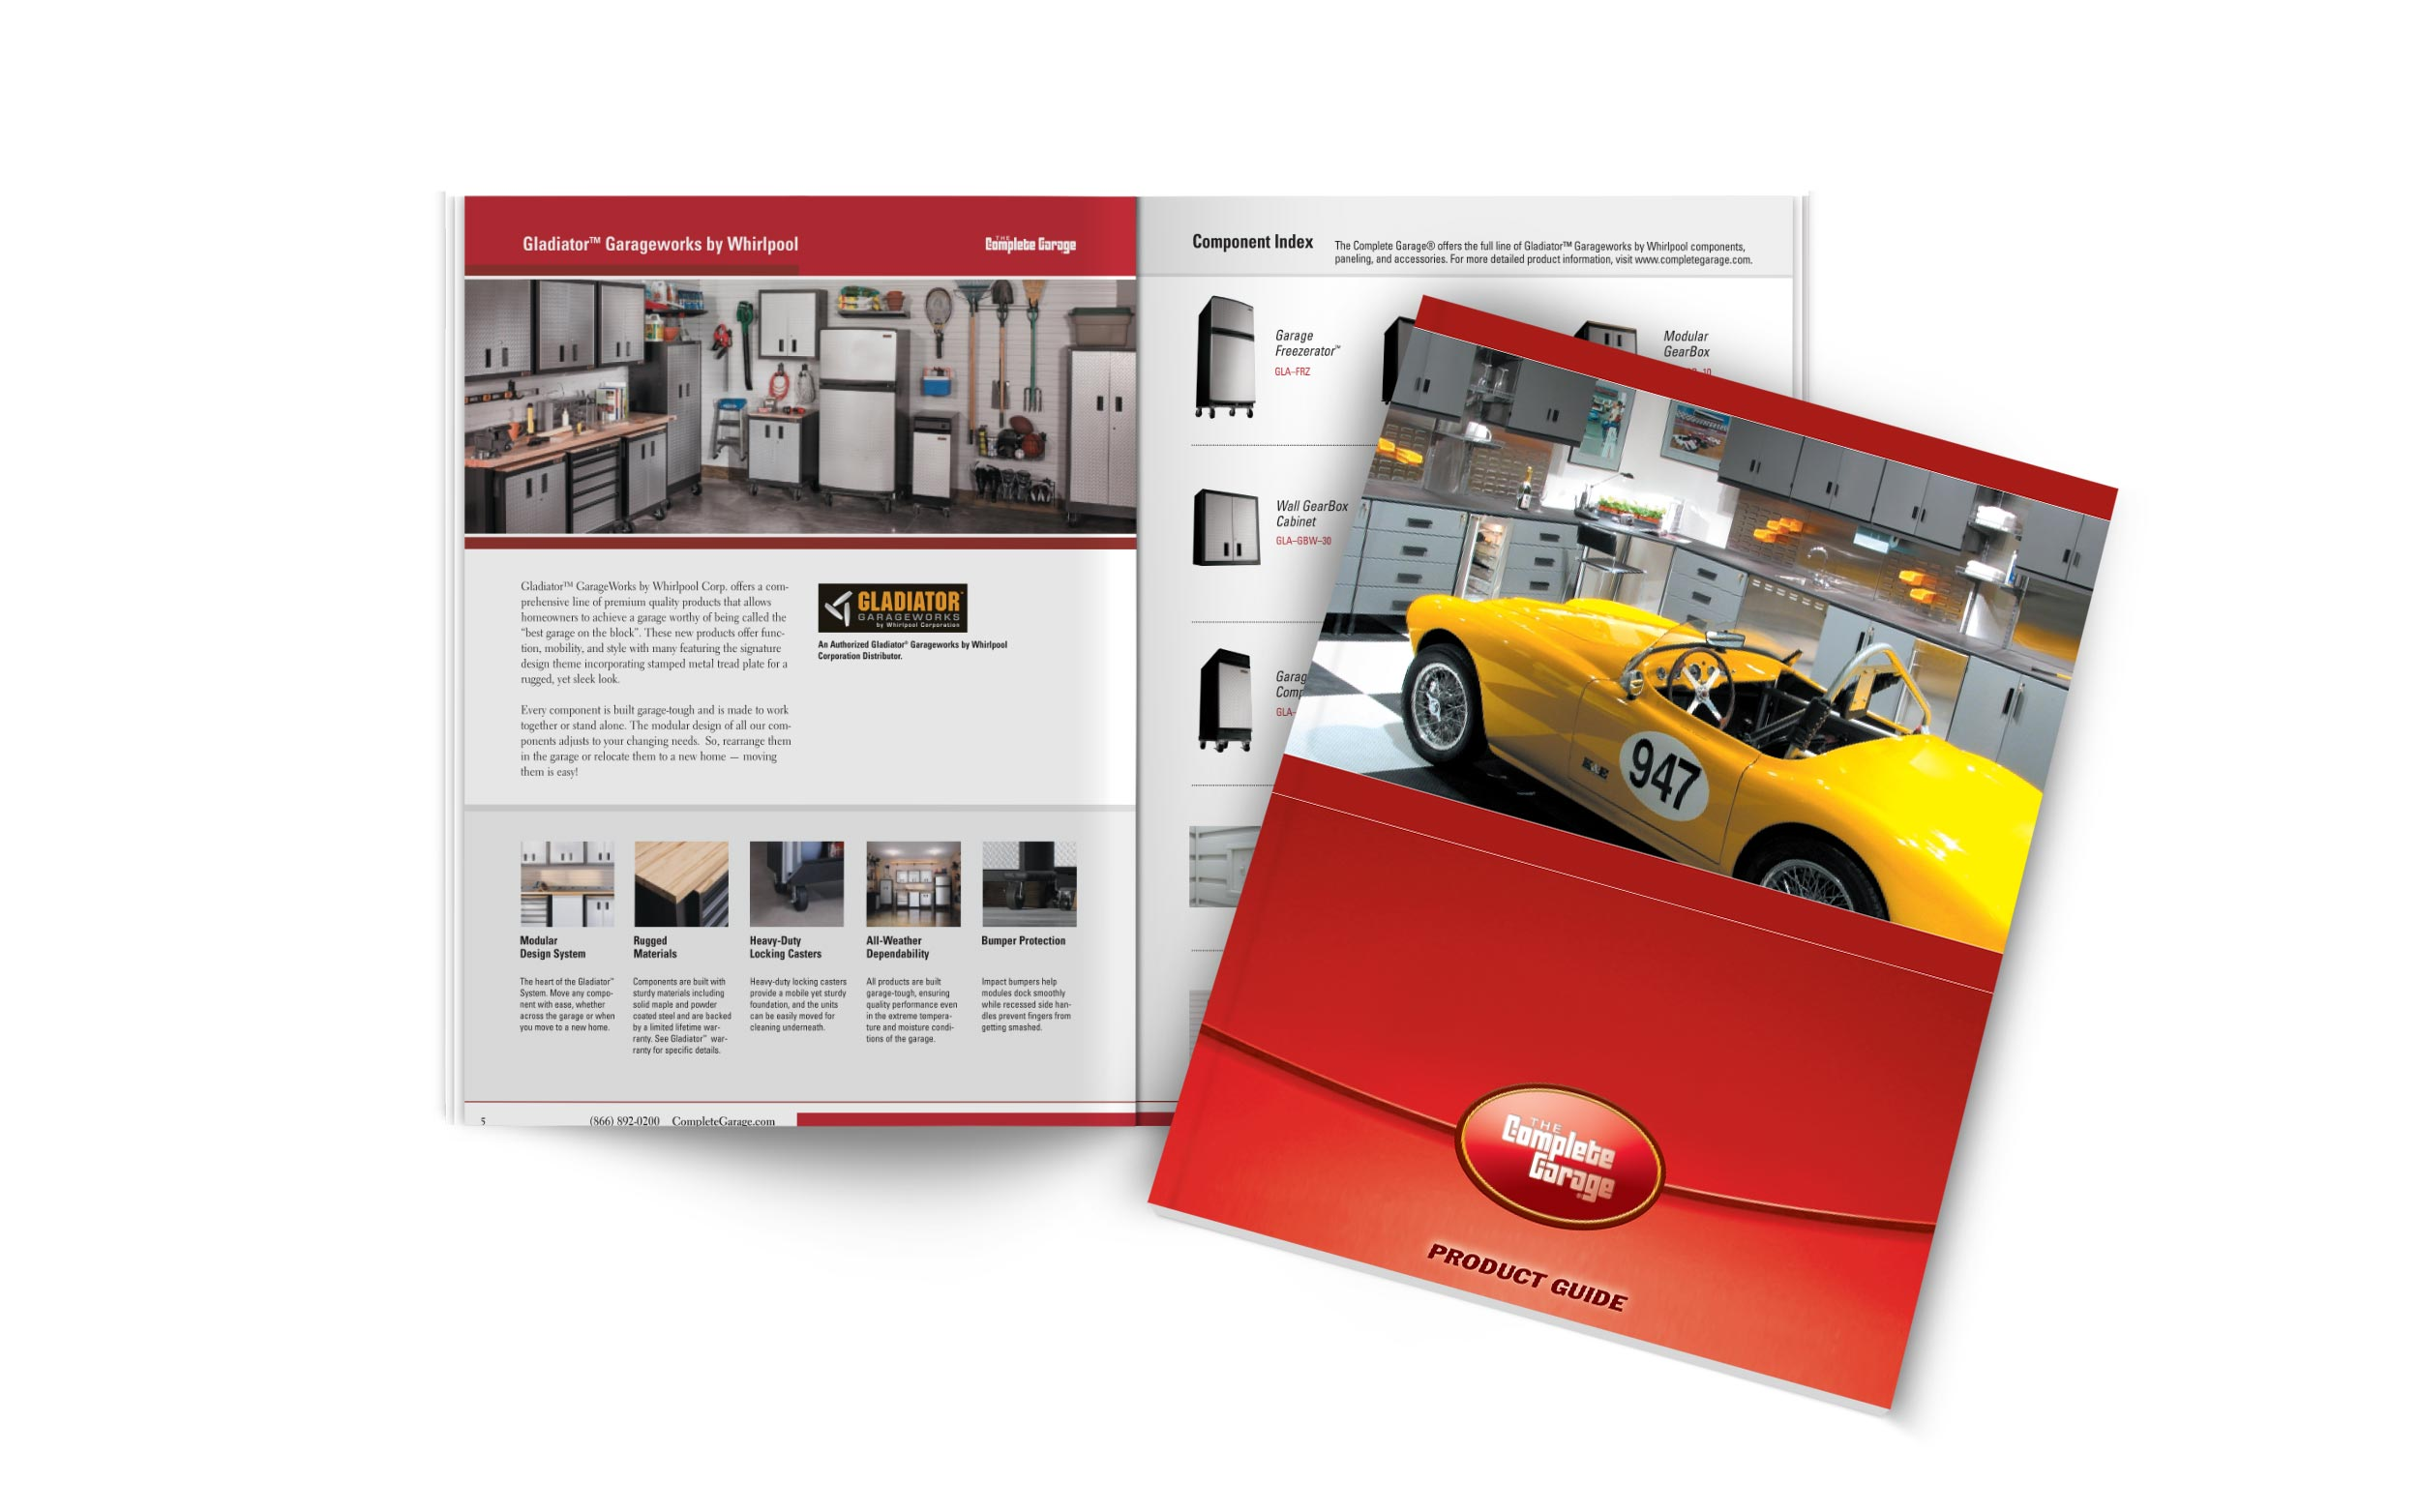 The Complete Garage Product Catalog